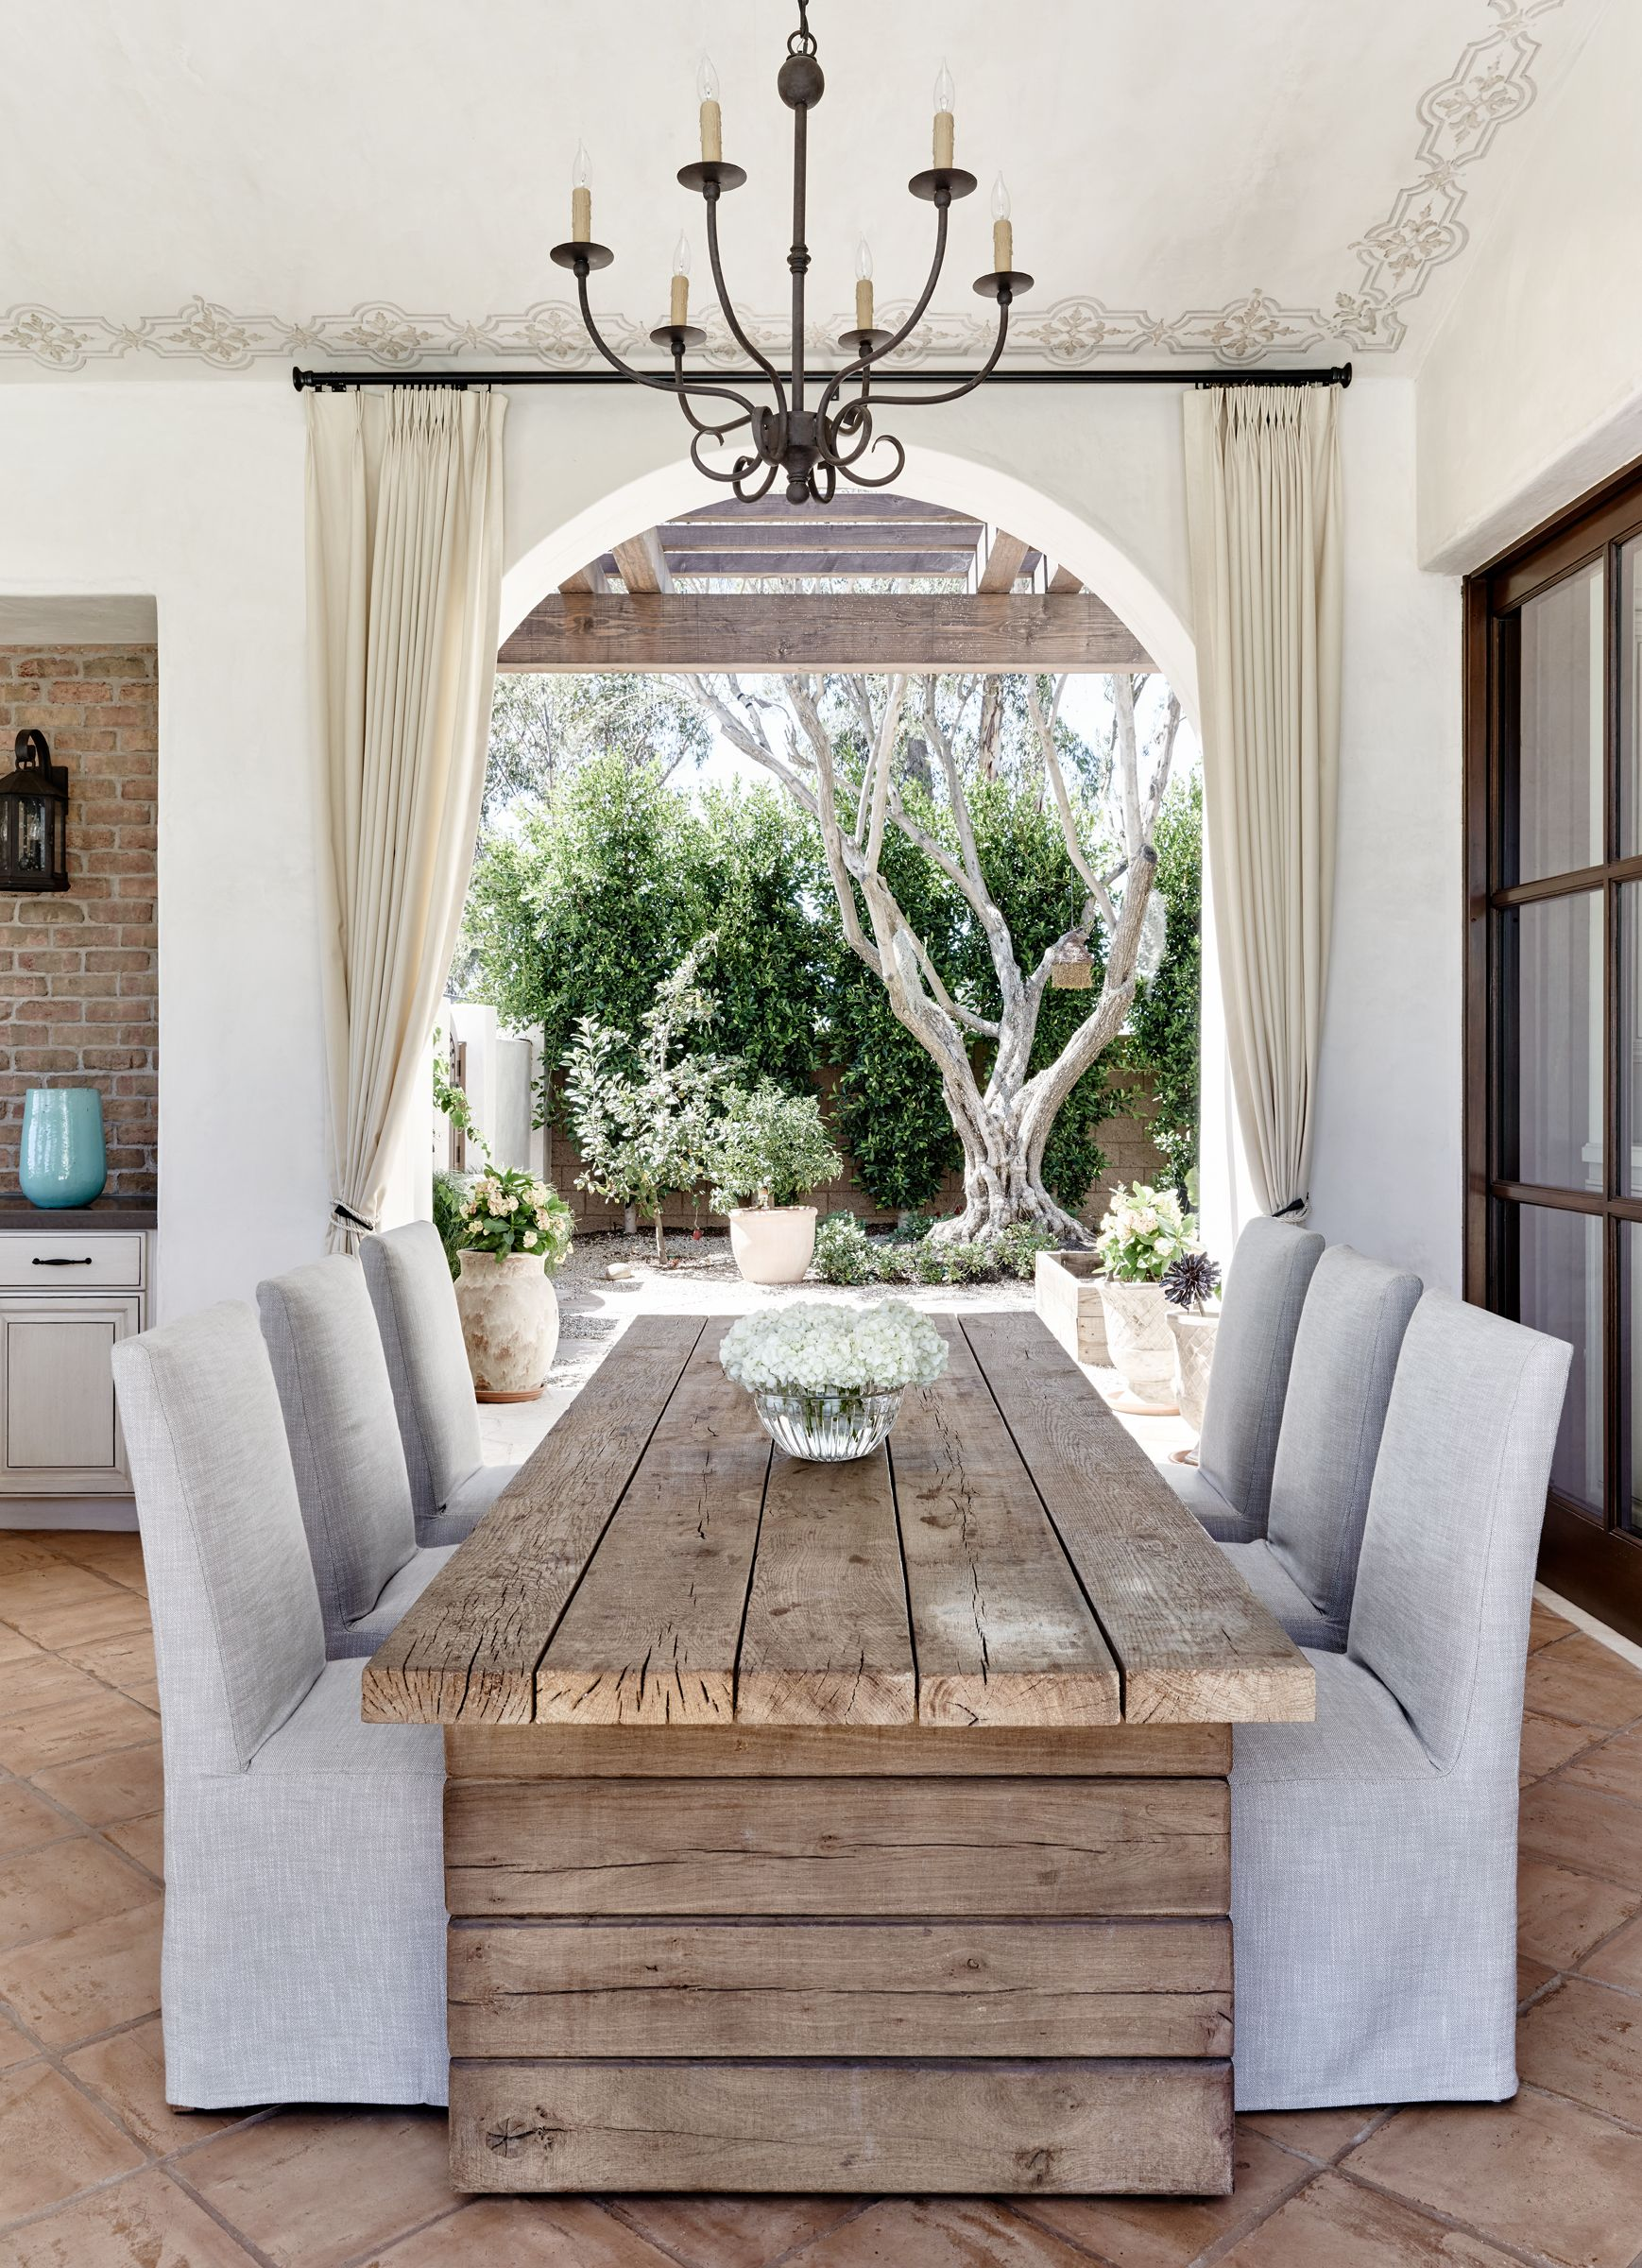 Table and stencils on ceiling | Decorating - French Decor ...